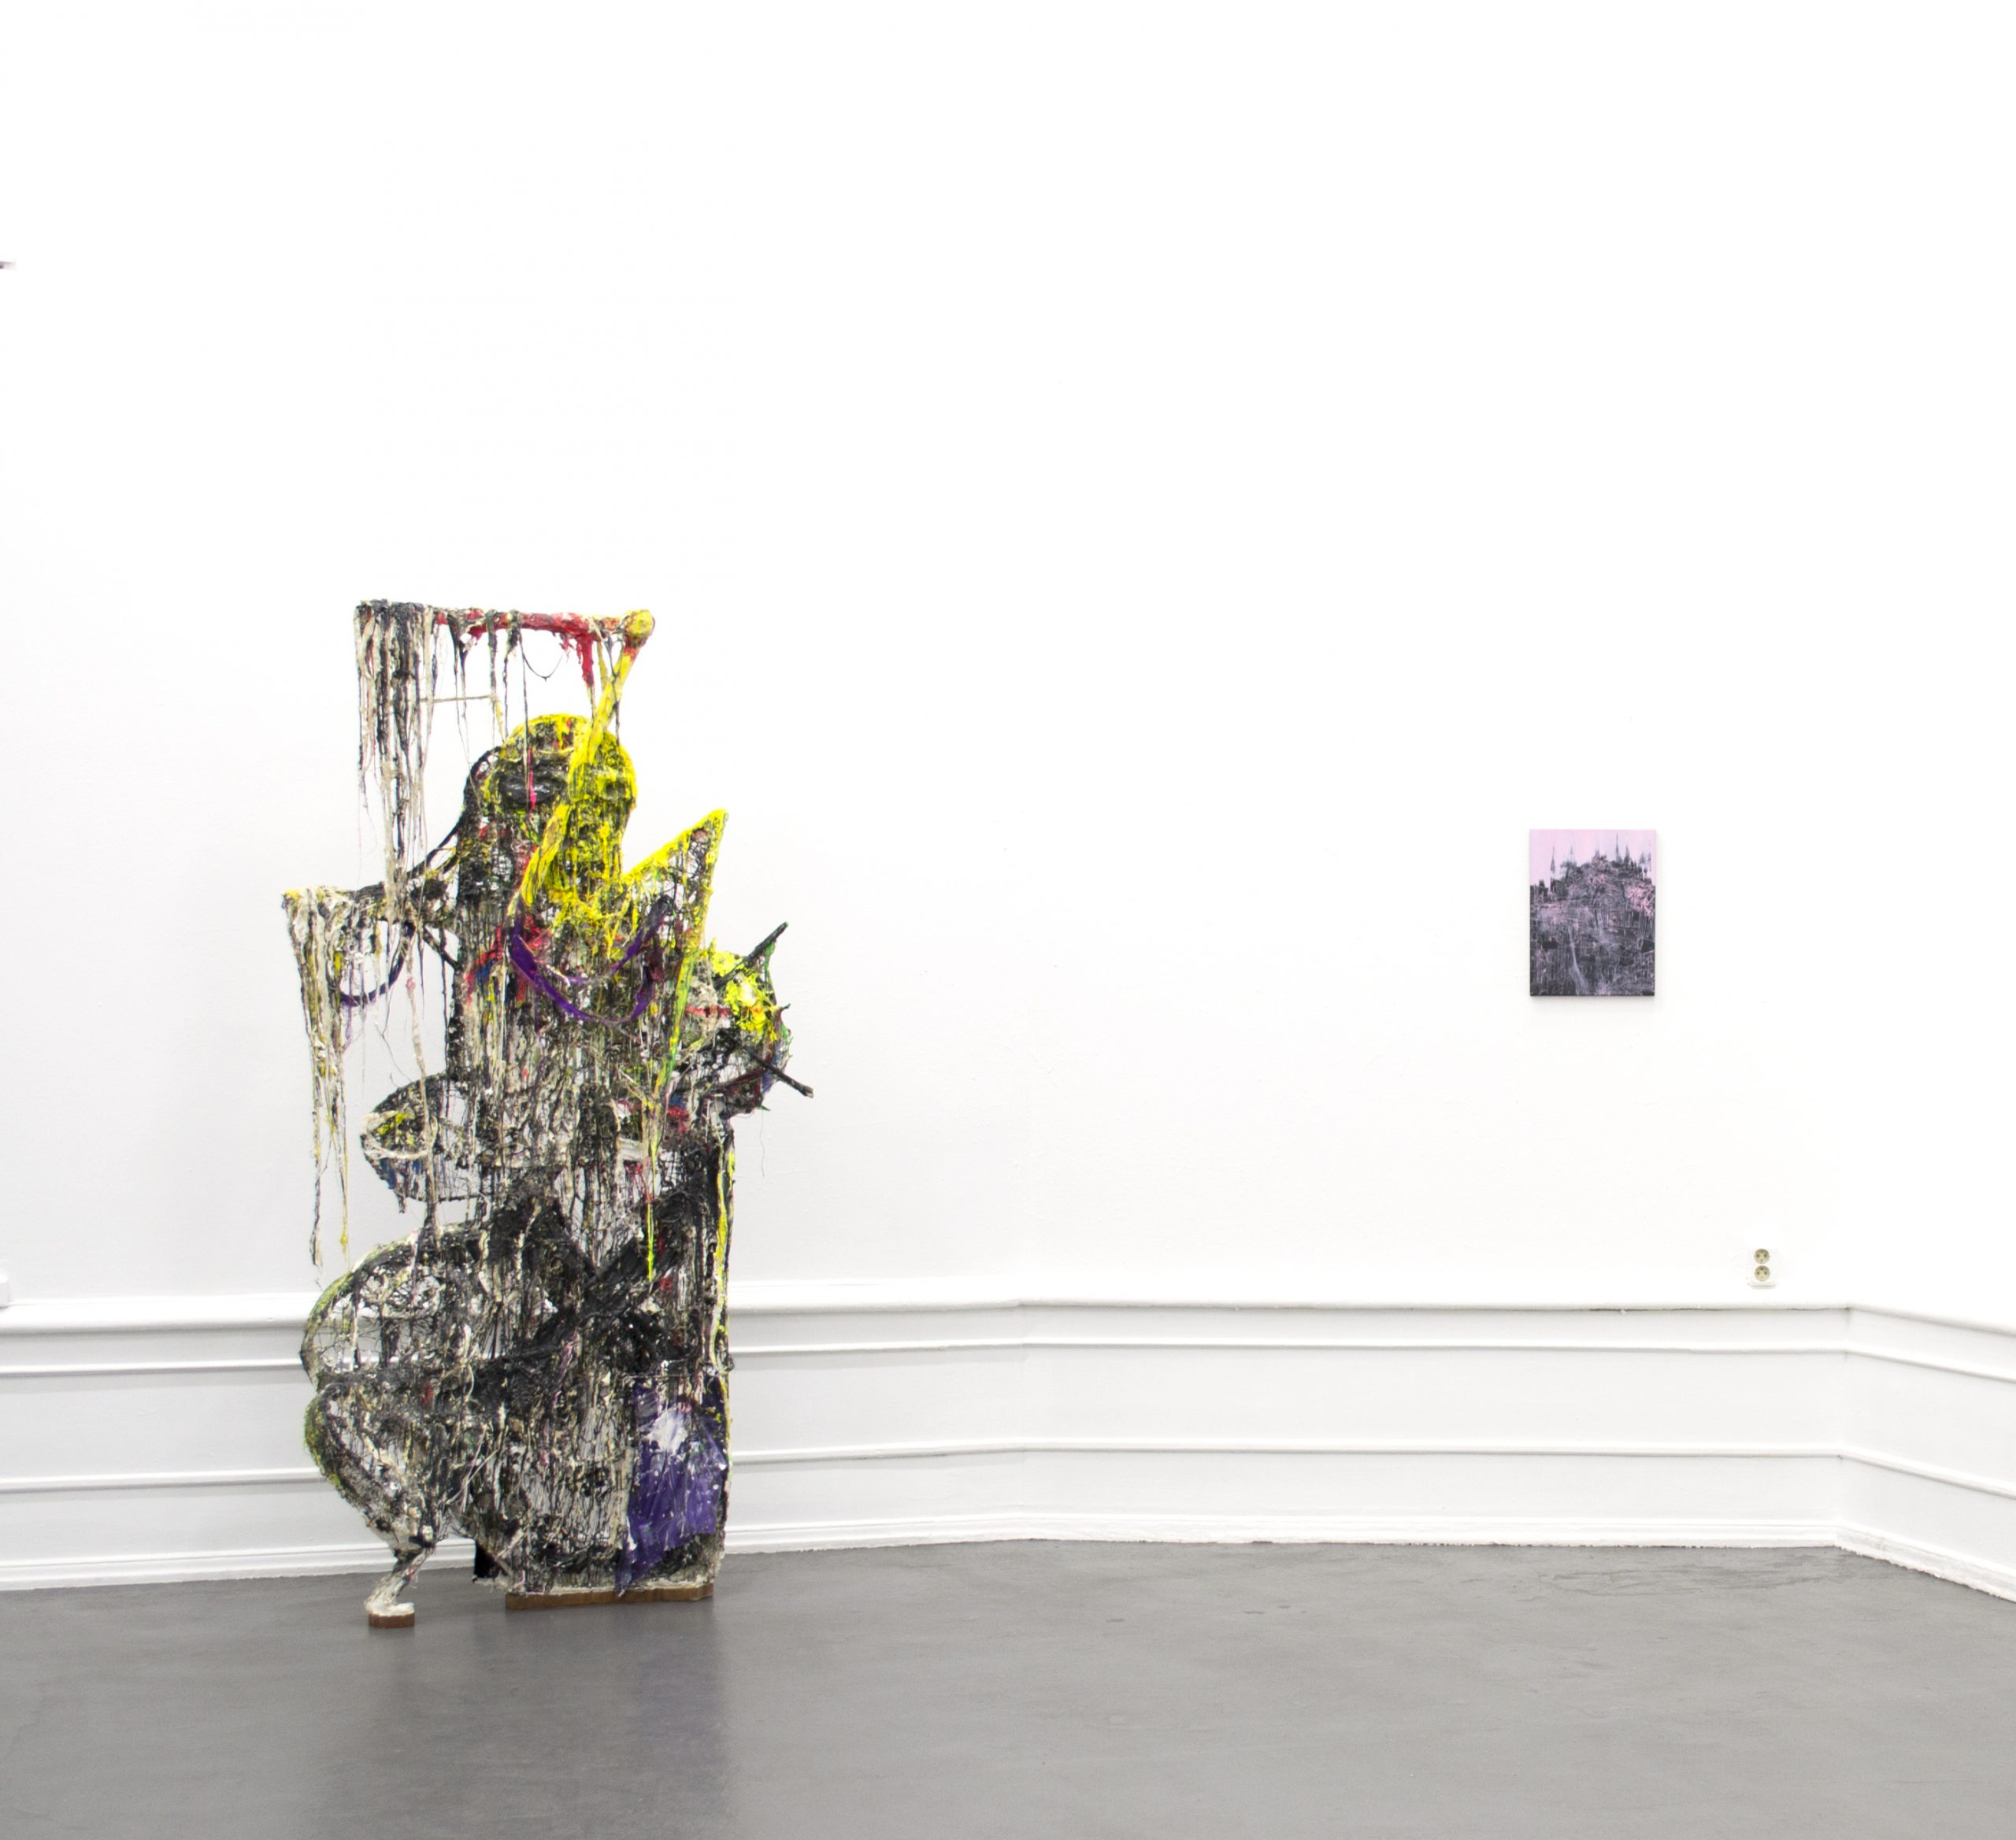 Jakob Westberg, (Sculpture), Lisa D Manner (painting). Installation view: Sculpture and Painting in Dialogue, 2020